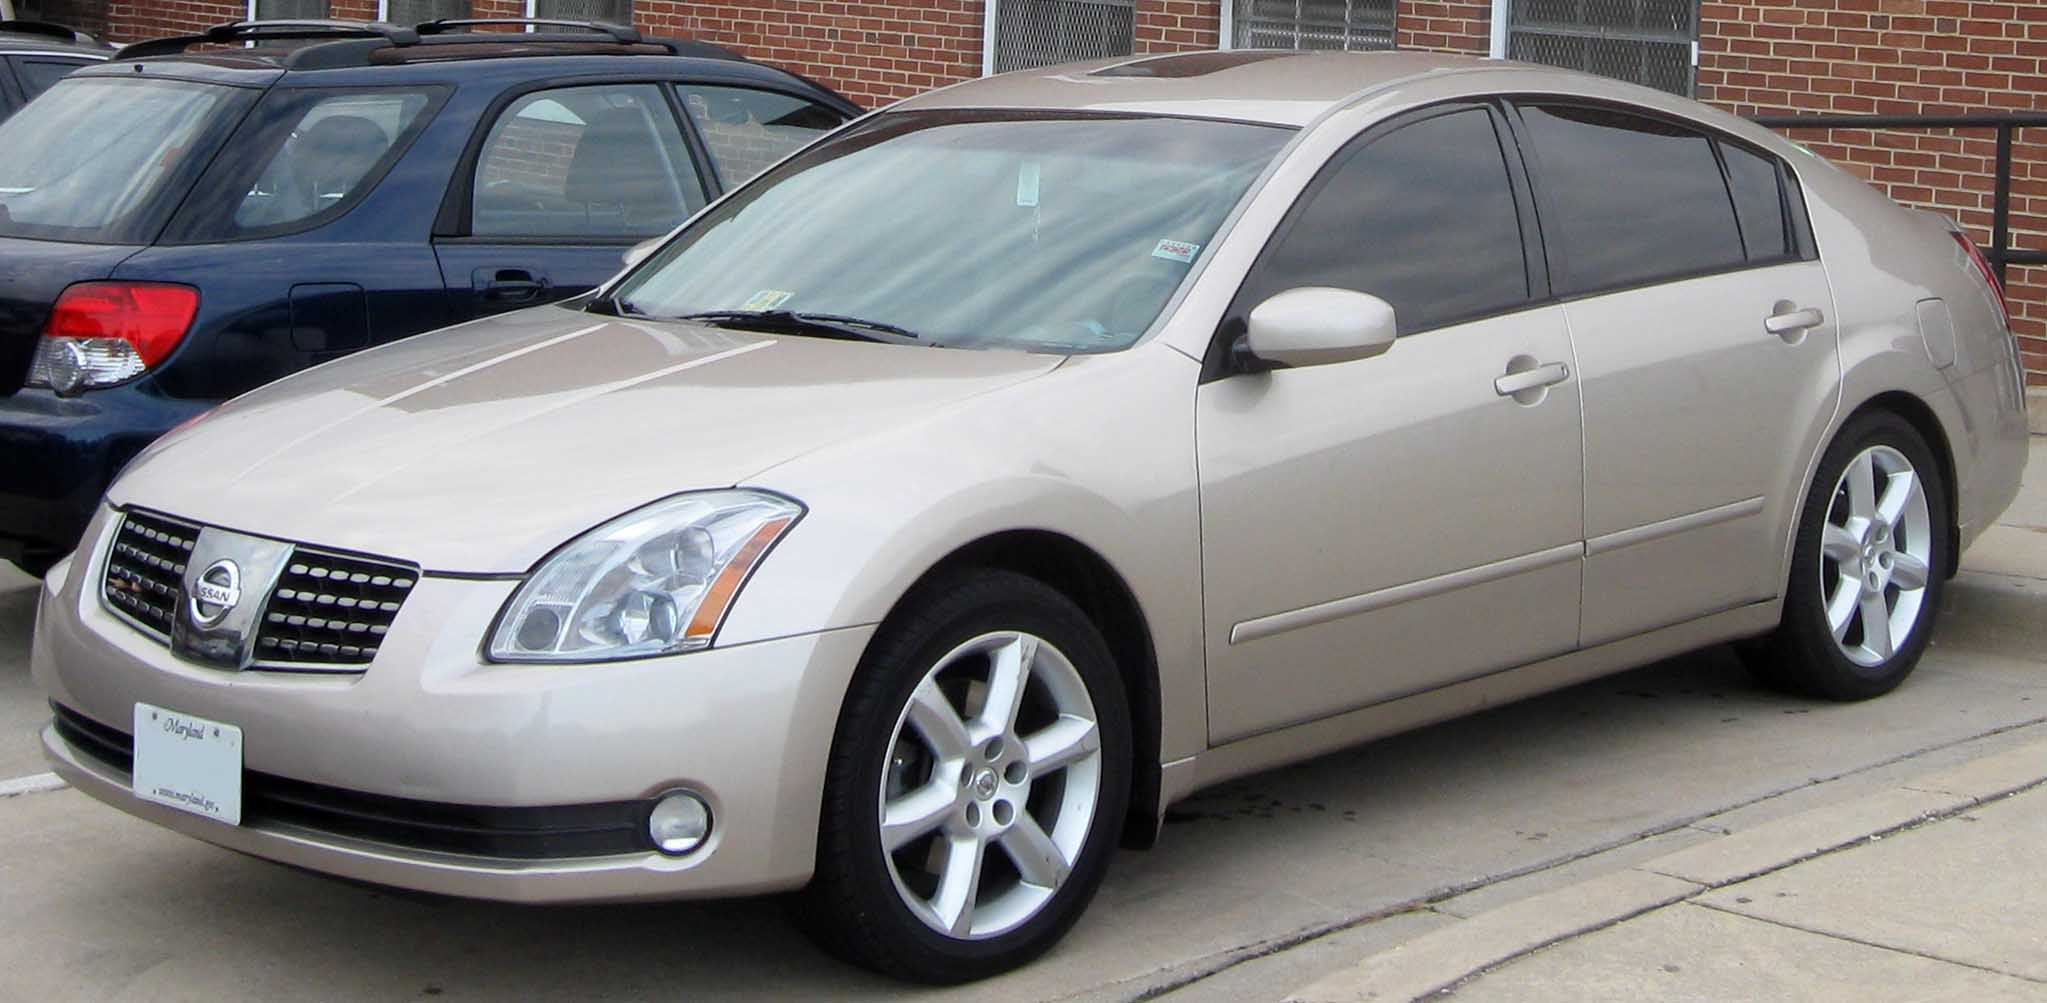 Attractive Nissan Maxima Vii 2008 Images #13